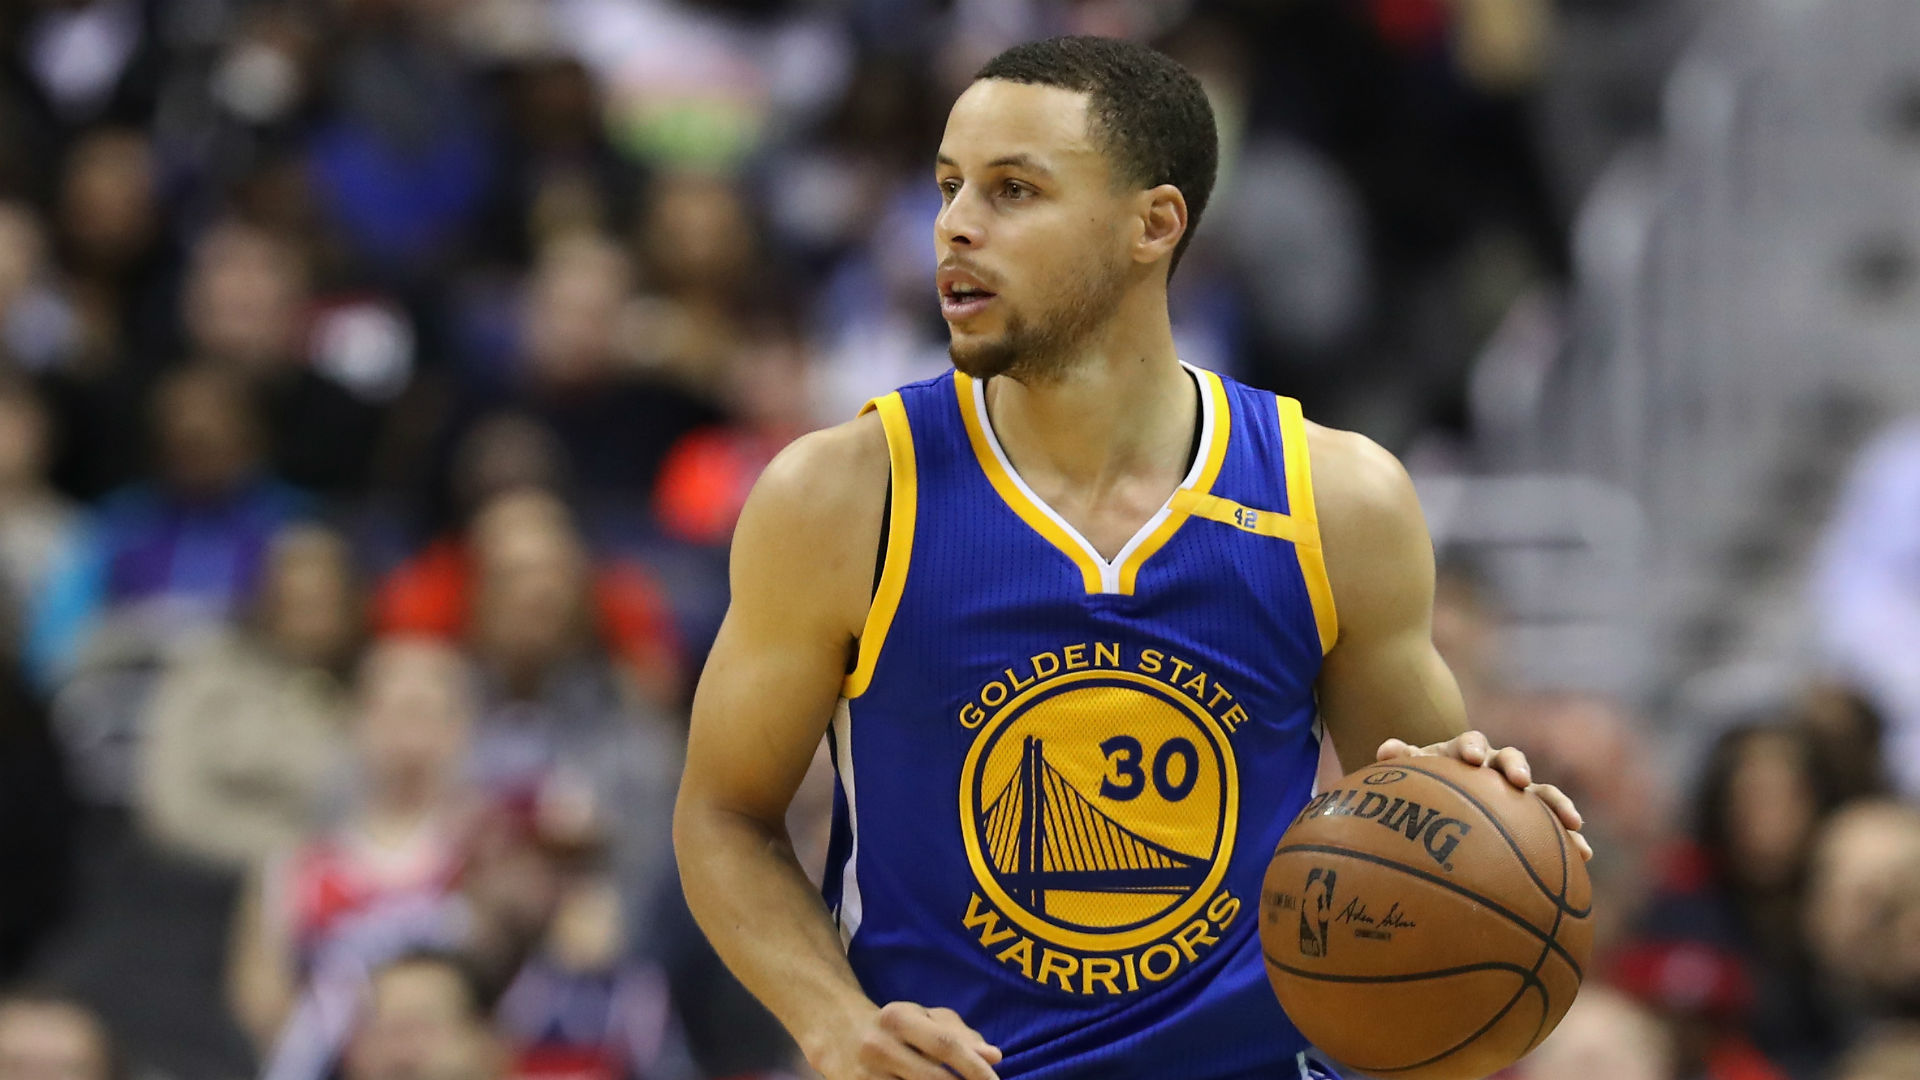 Stephen-curry-golden-state-golden-state-vs-wizards-nba_waovmseeoulv1noovrn3g39rk